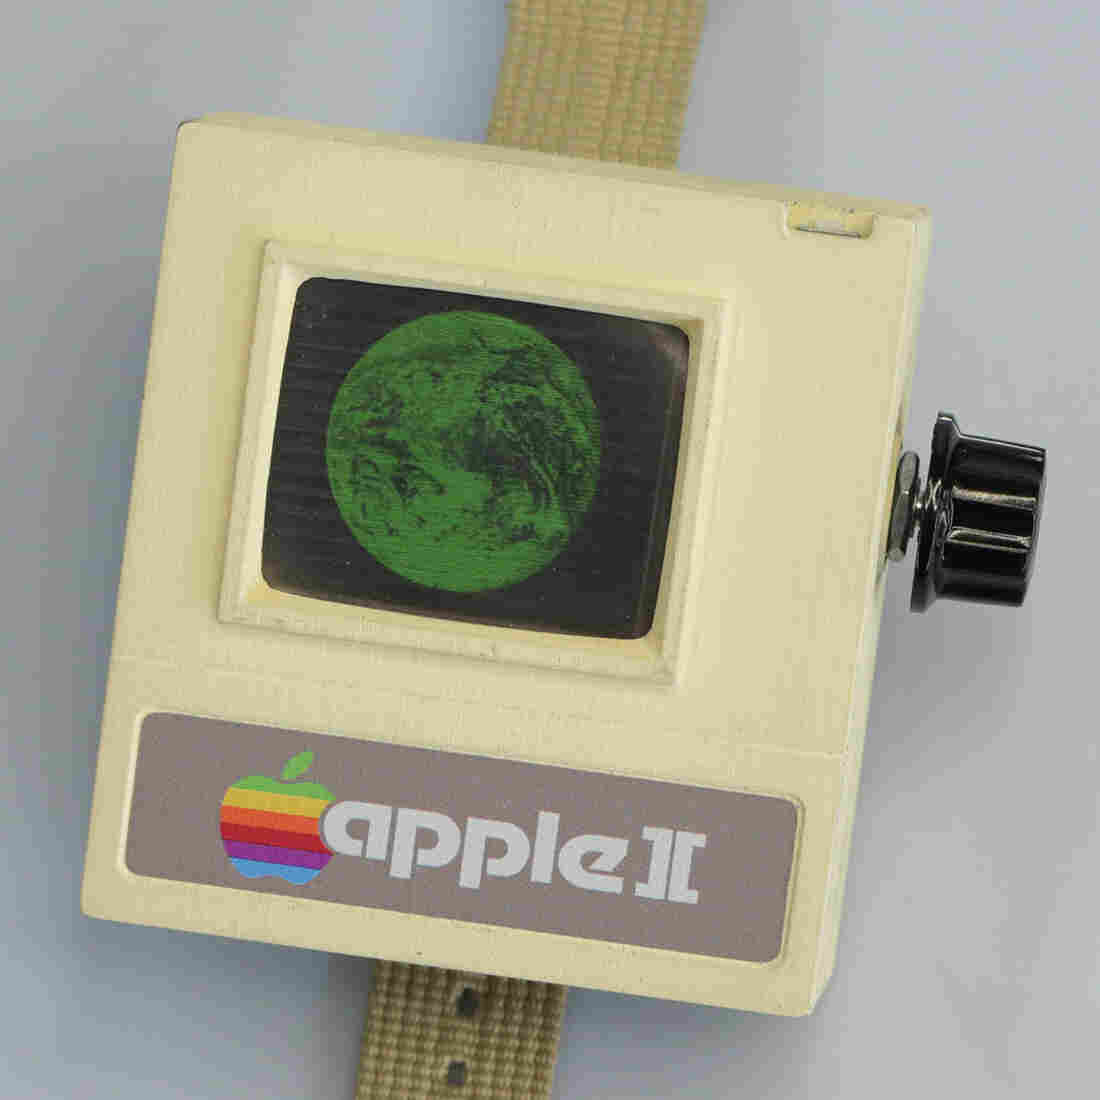 The Apple II Watch is meant to parody the Apple Watch and show what wearables might have looked like in the 1980s.